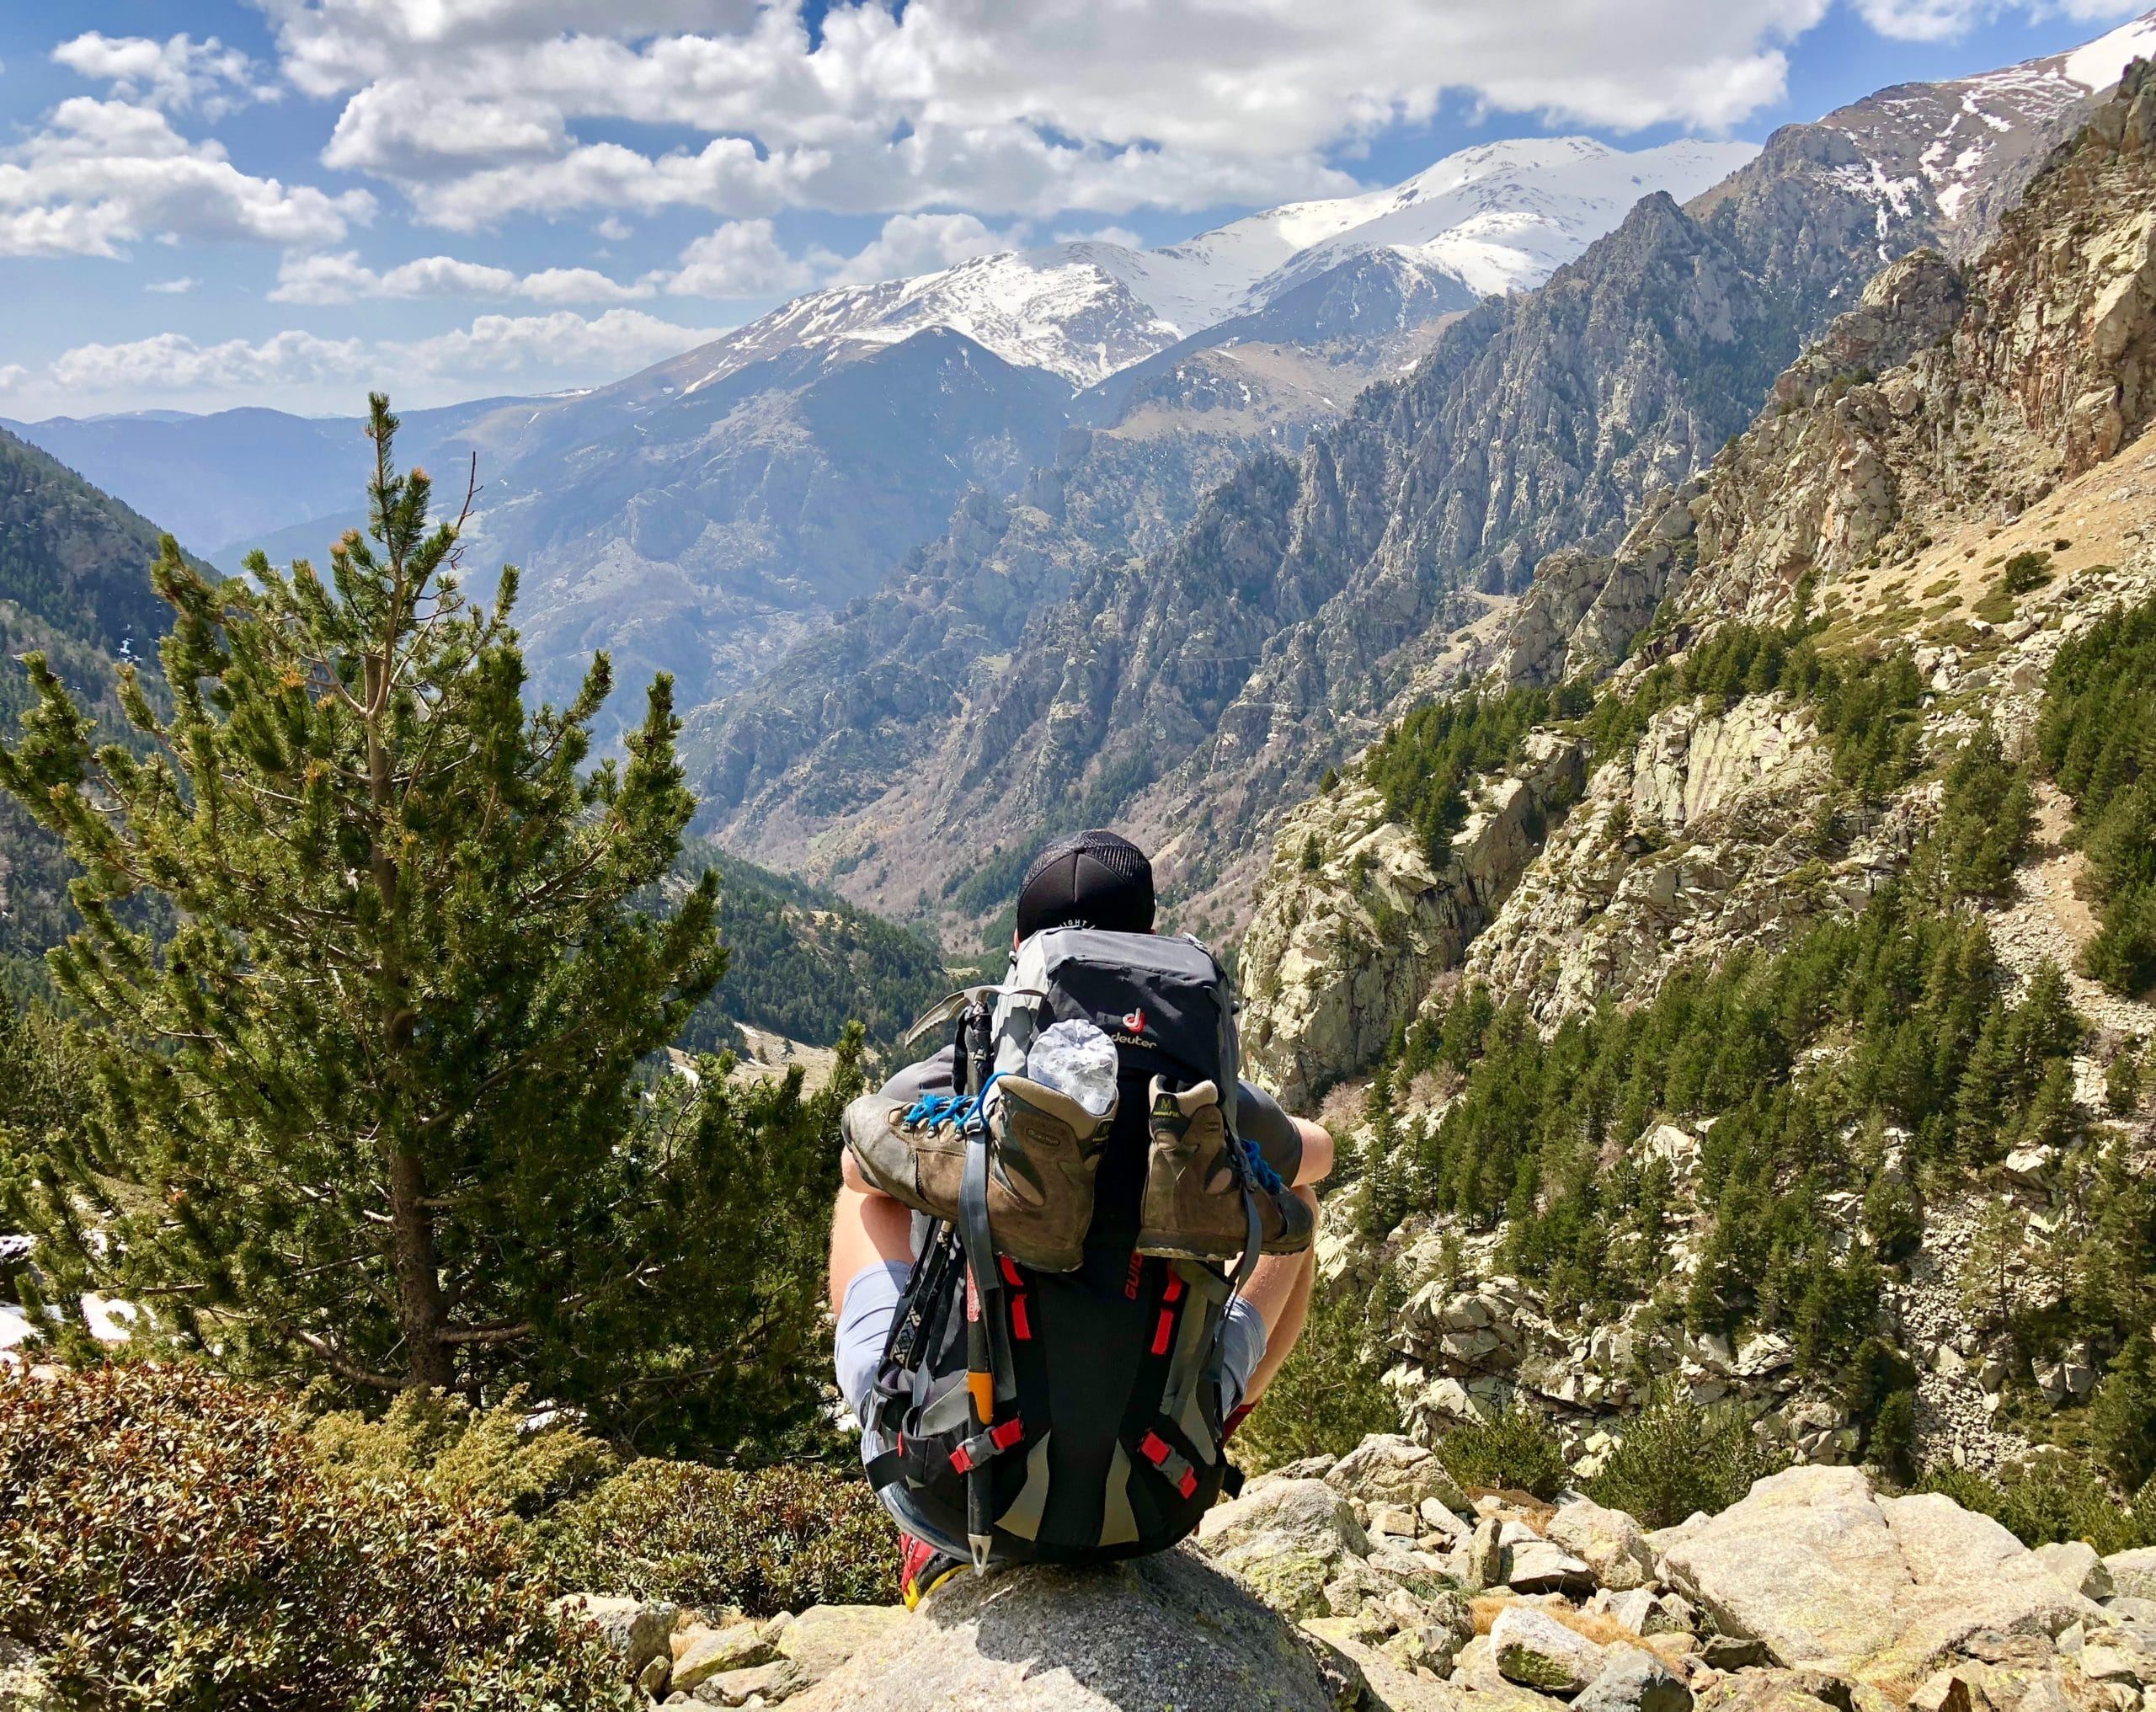 Man with a backpack practicing mindfulness while looking at a valley, trees, and mountains in the distance.